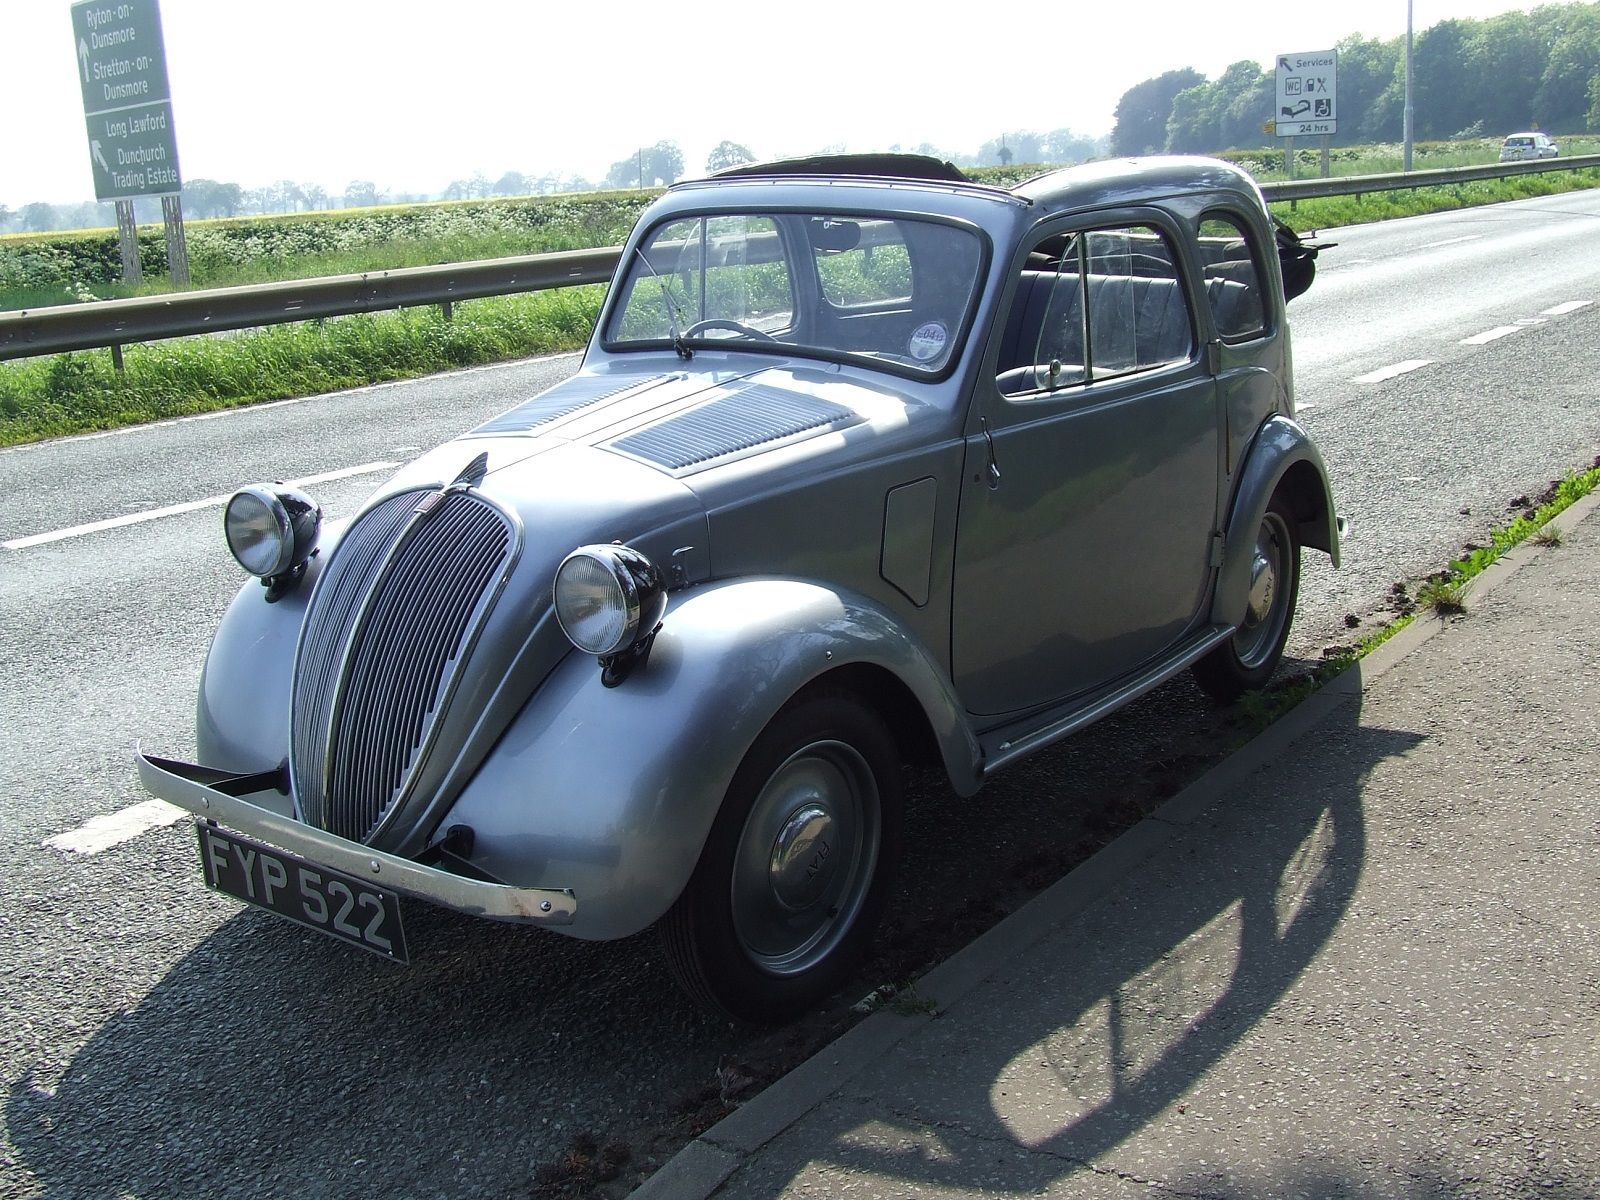 Fiat Topolino Rare 1939 Convertible 4 Seater Prev Owned By 2nd Duke 1954 500 For Sale Westminster